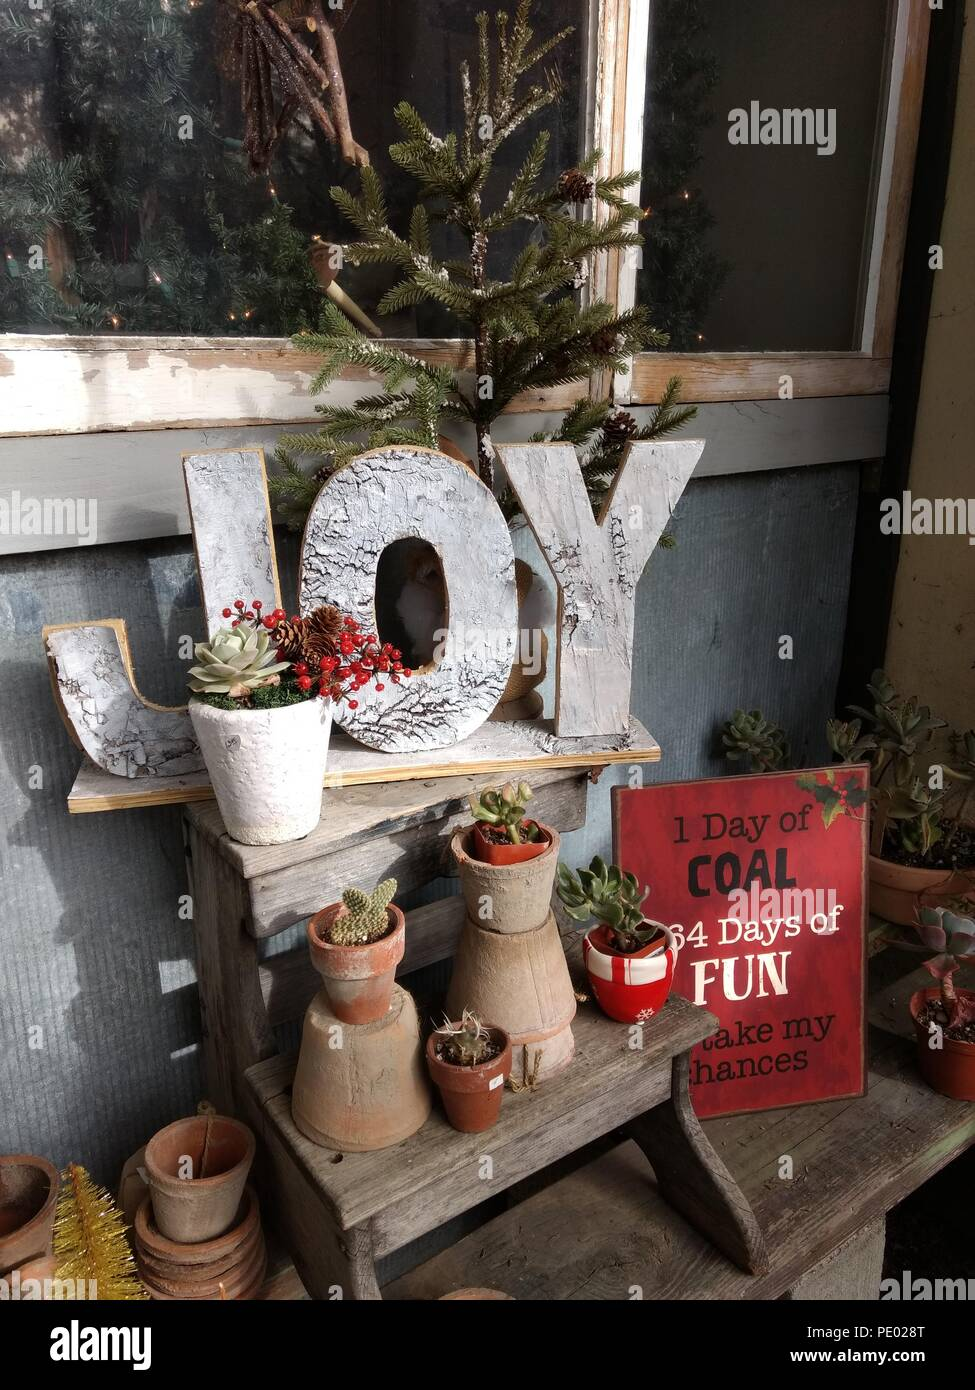 christmas decorations in storejoy spelled in big letters and funny sign